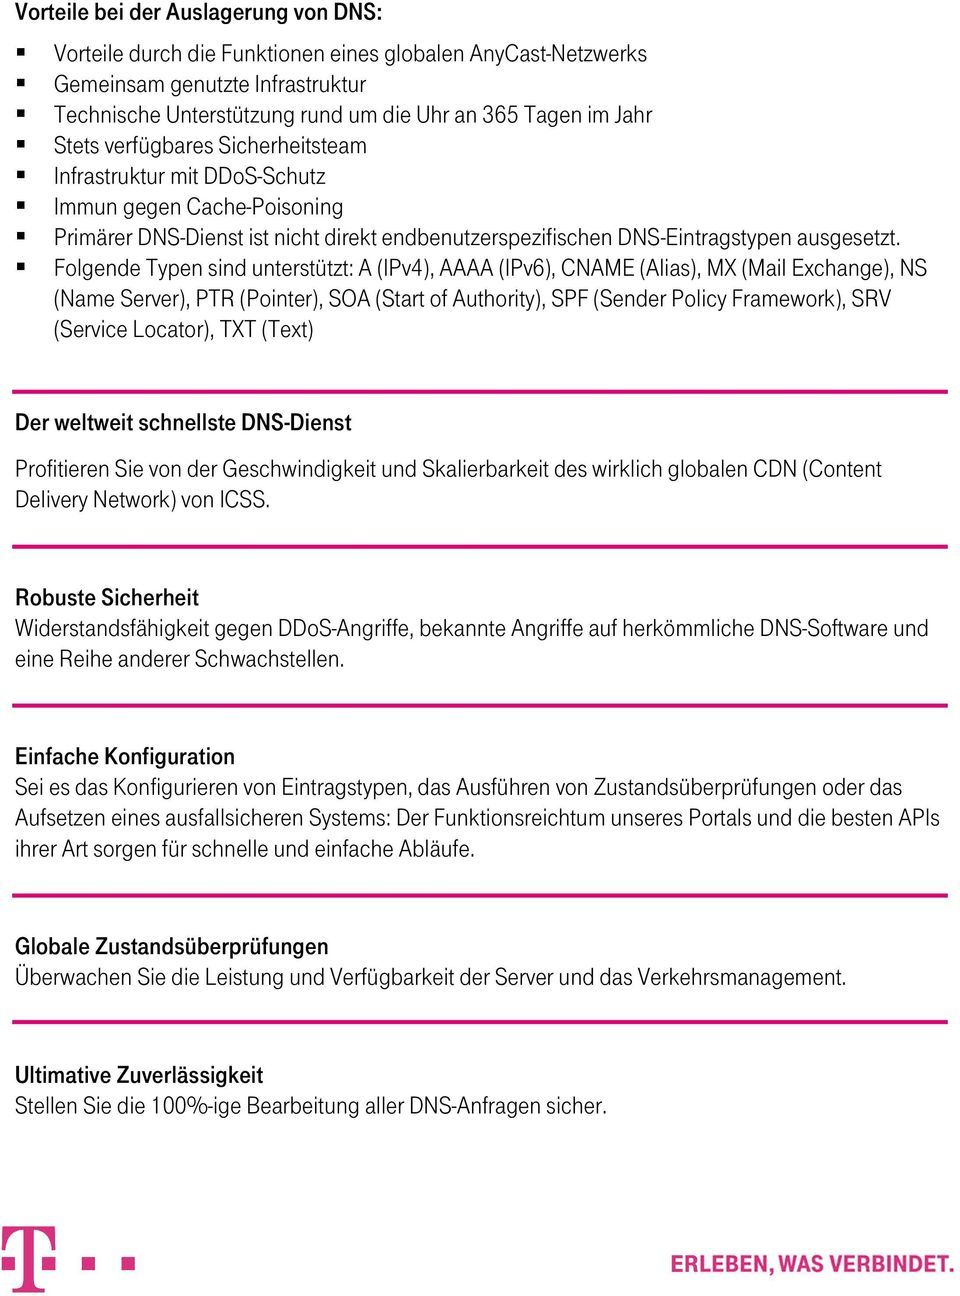 Folgende Typen sind unterstützt: A (IPv4), AAAA (IPv6), CNAME (Alias), MX (Mail Exchange), NS (Name Server), PTR (Pointer), SOA (Start of Authority), SPF (Sender Policy Framework), SRV (Service